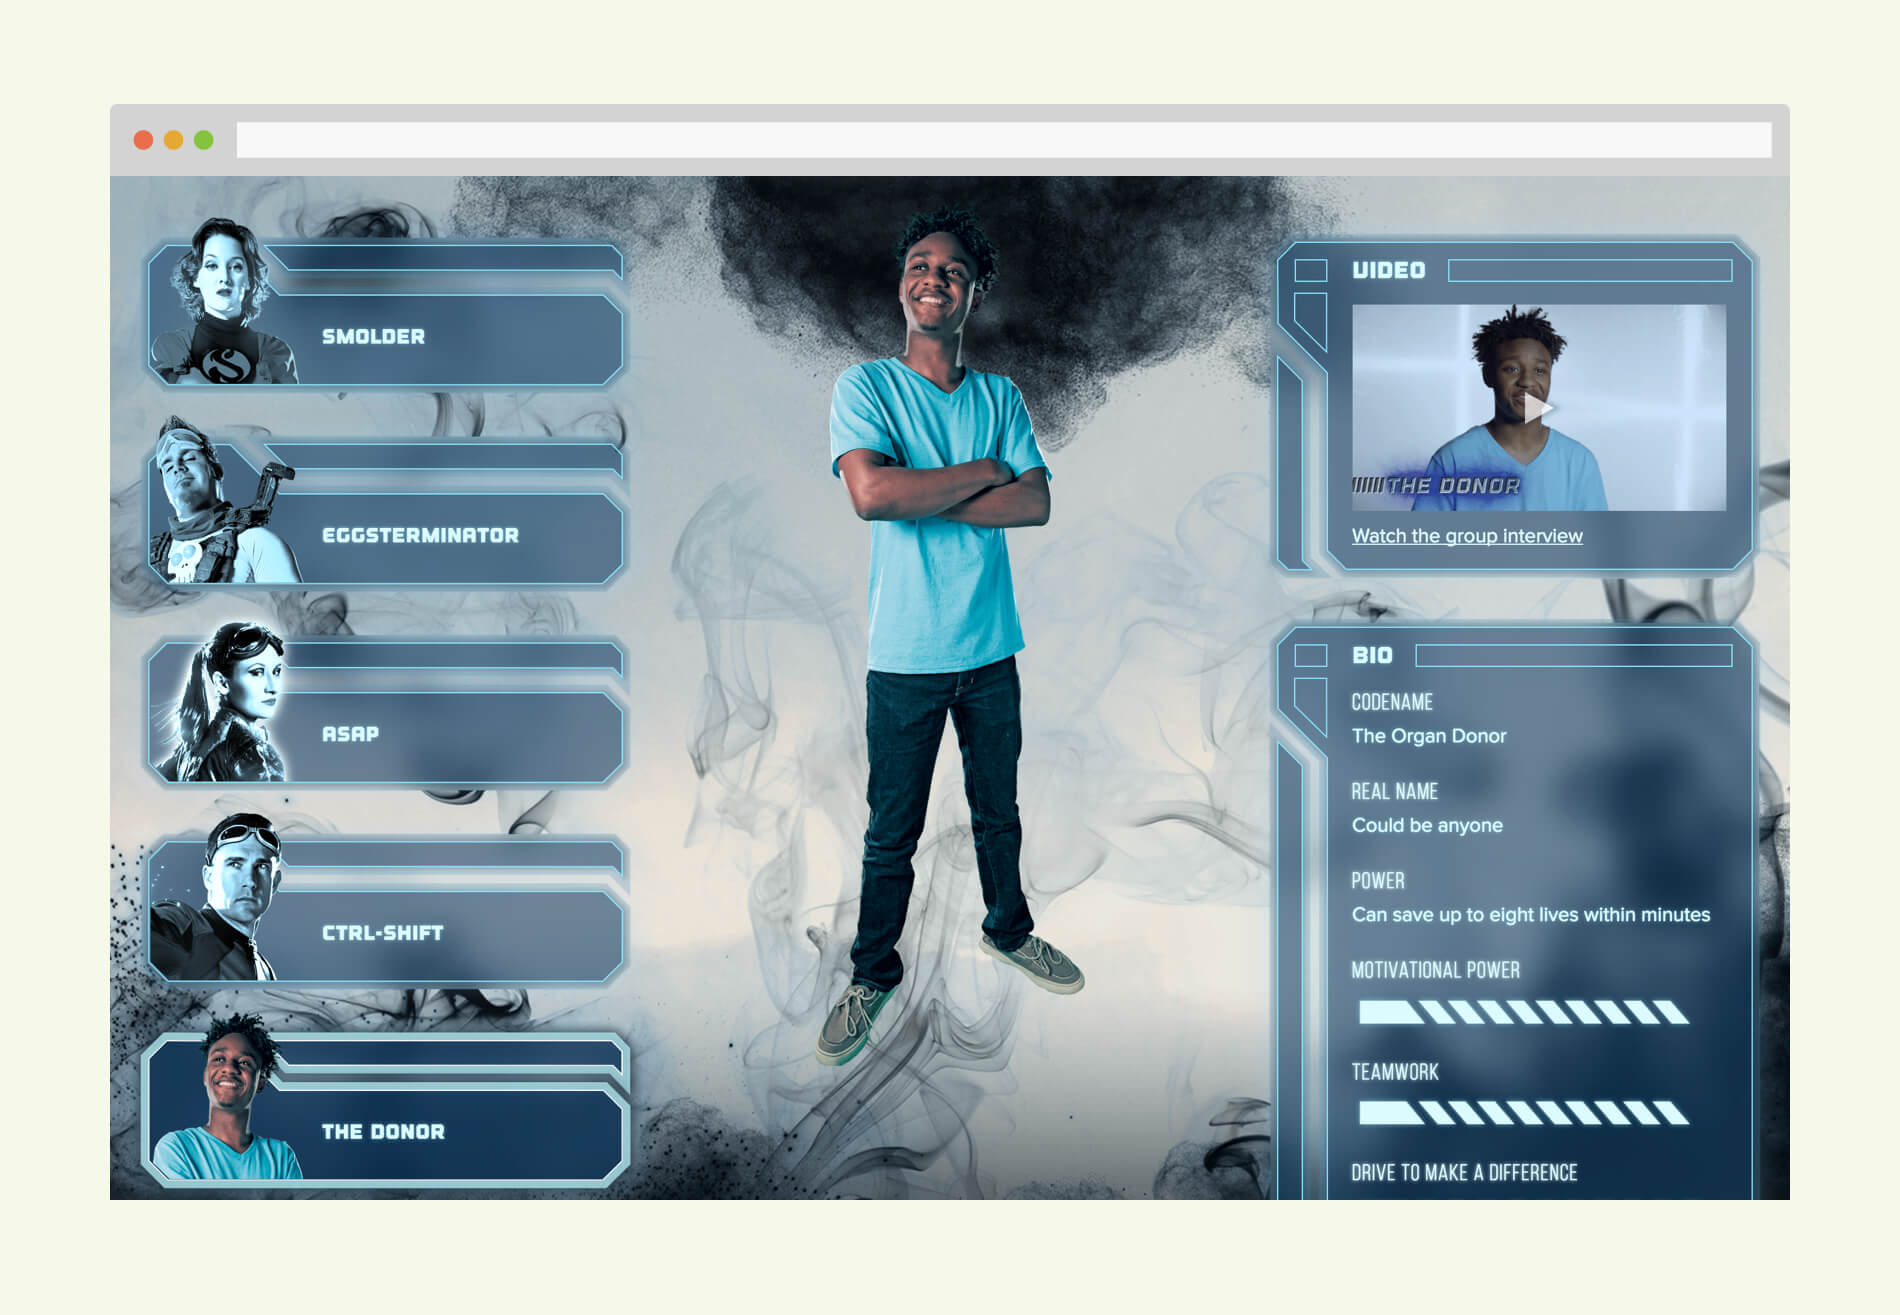 League of Lifesavers page showing one of the heros, The Donor, who looks like an ordinary young adult wearing a tee shirt and jeans. Shows art, video thumbnail, and accompanying backstory.